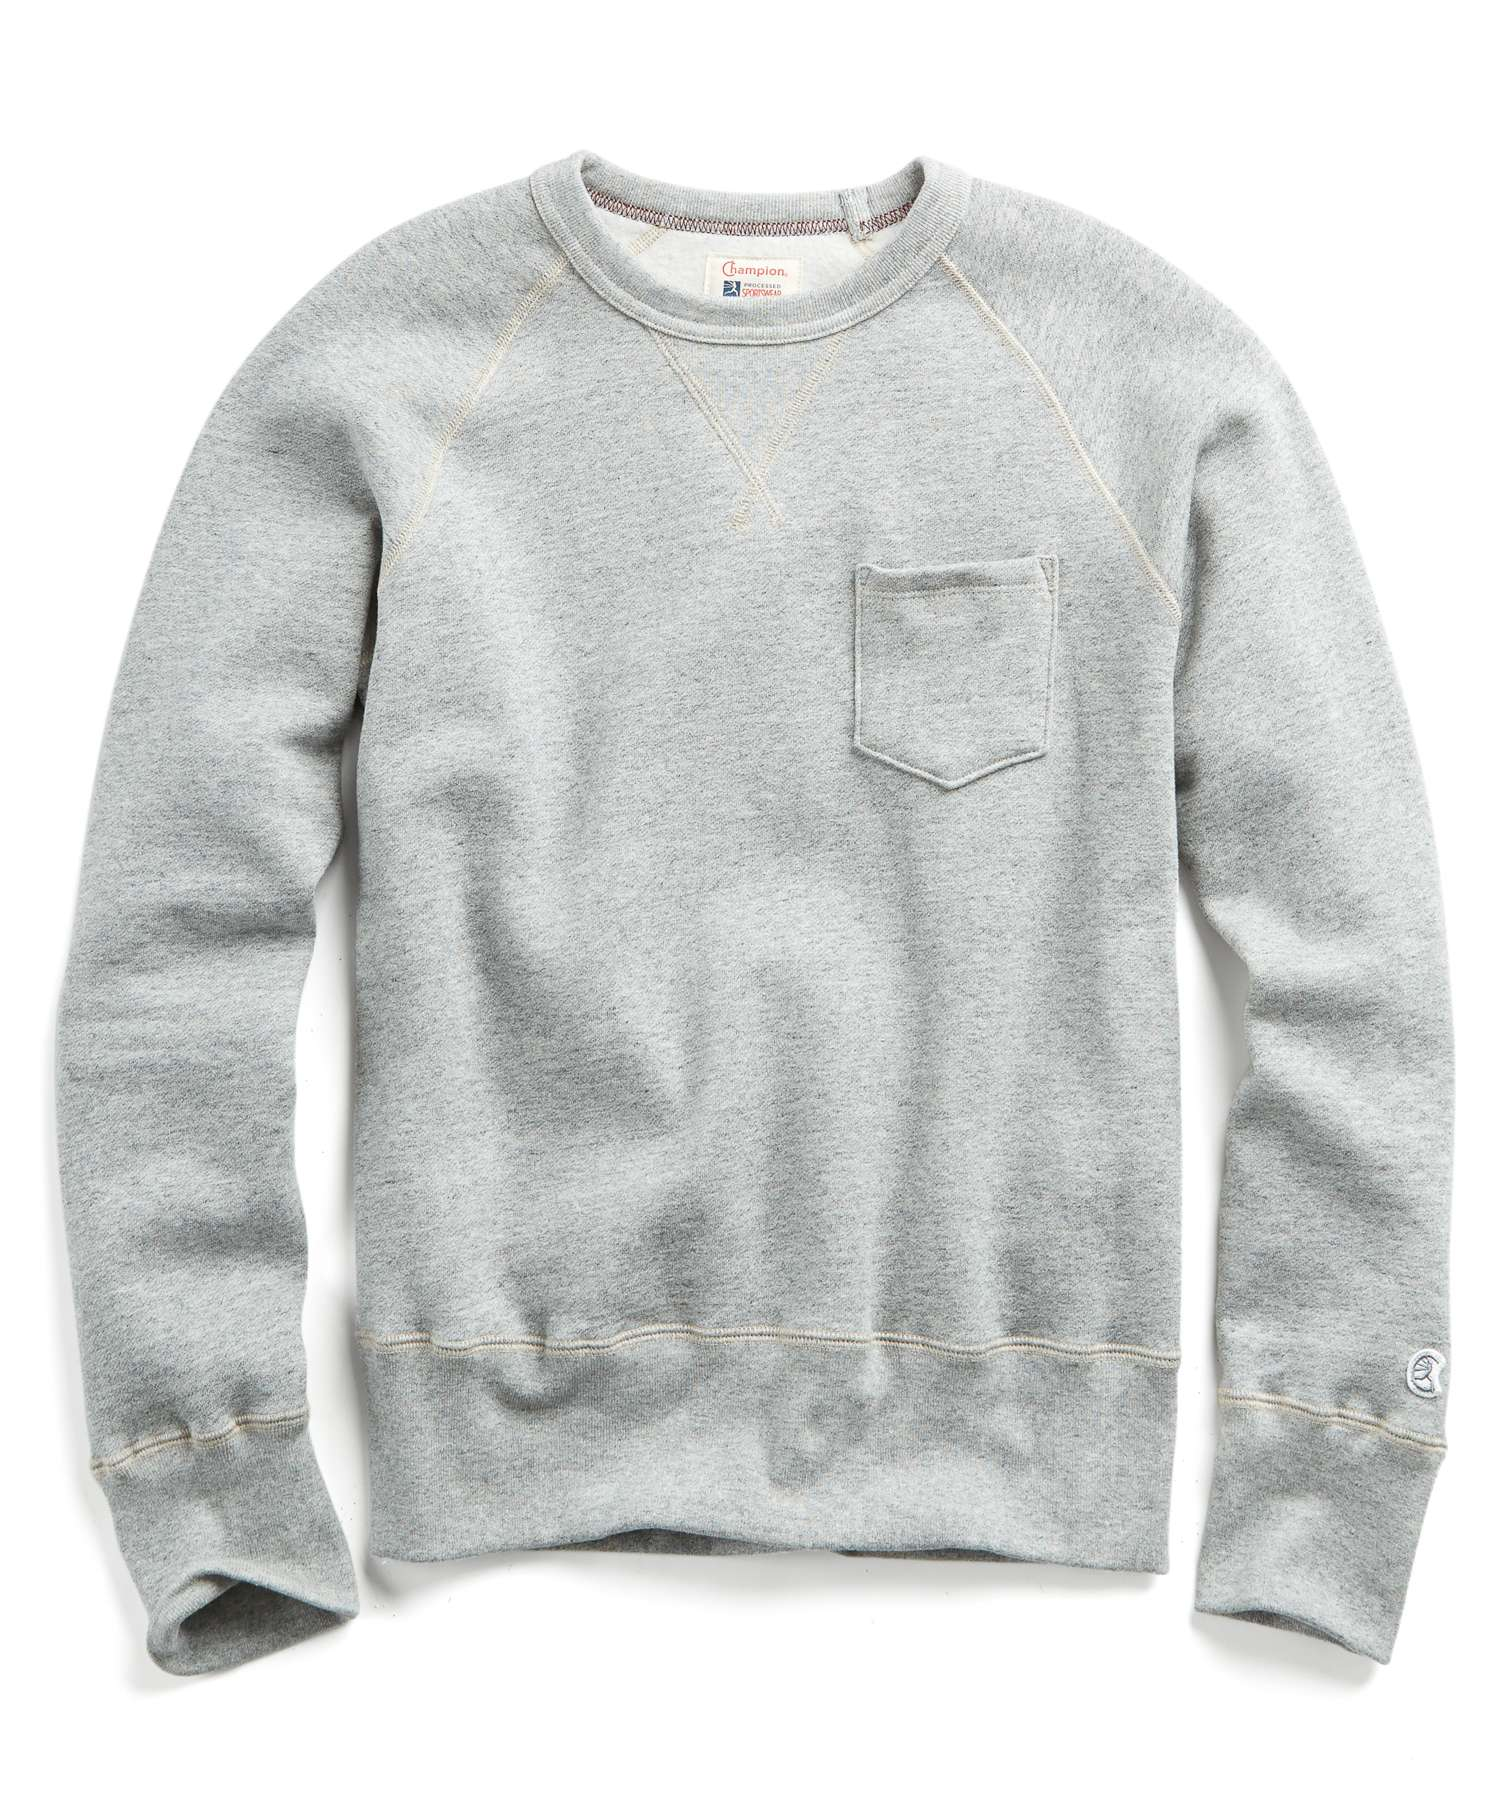 Heavyweight Pocket Sweatshirt in Light Grey Mix